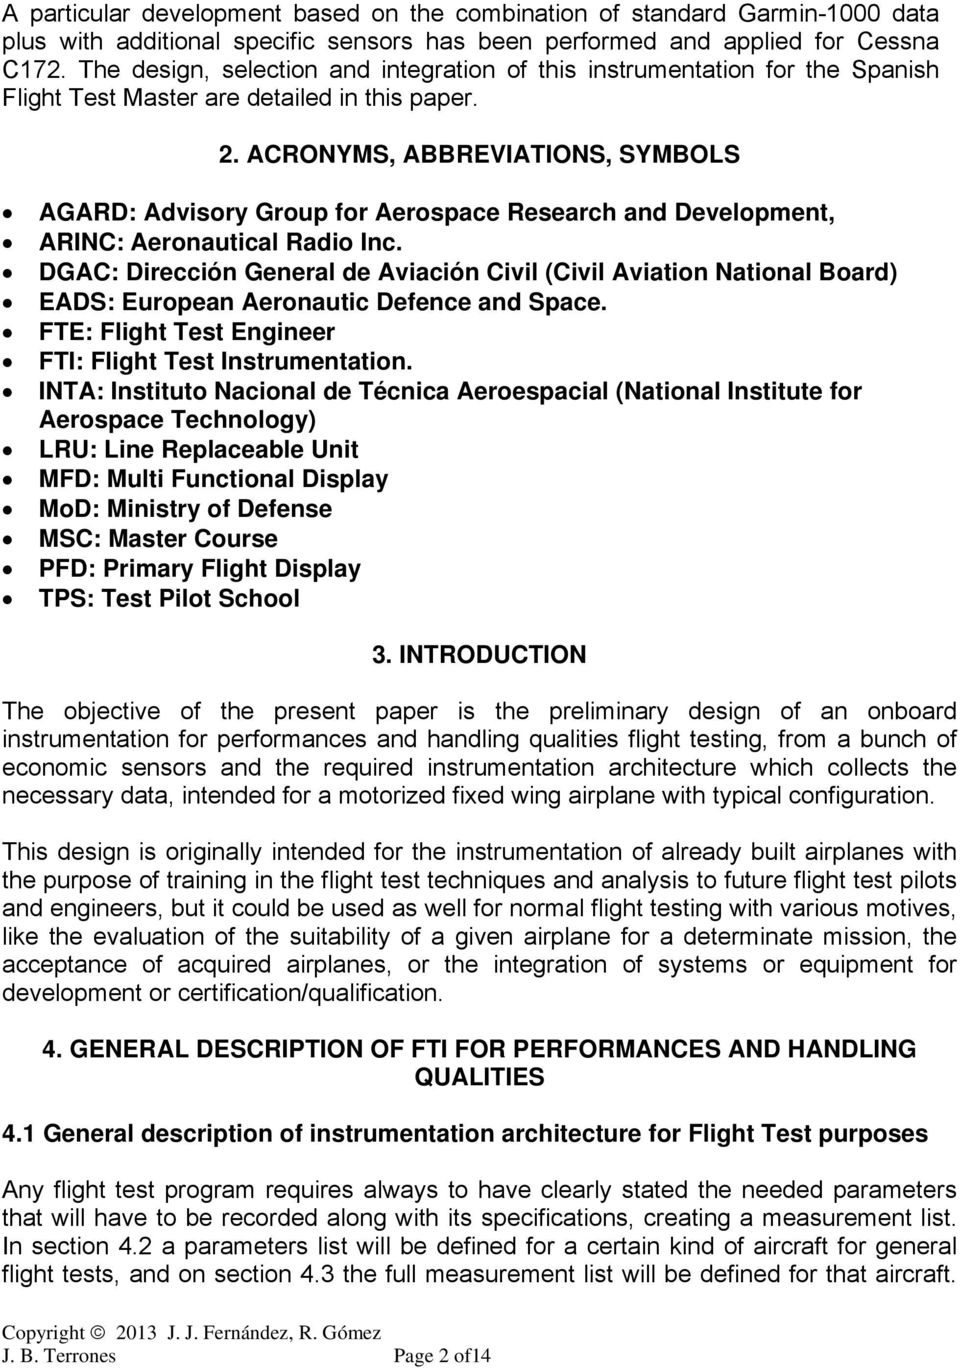 ACRONYMS, ABBREVIATIONS, SYMBOLS AGARD: Advisory Group for Aerospace Research and Development, ARINC: Aeronautical Radio Inc.